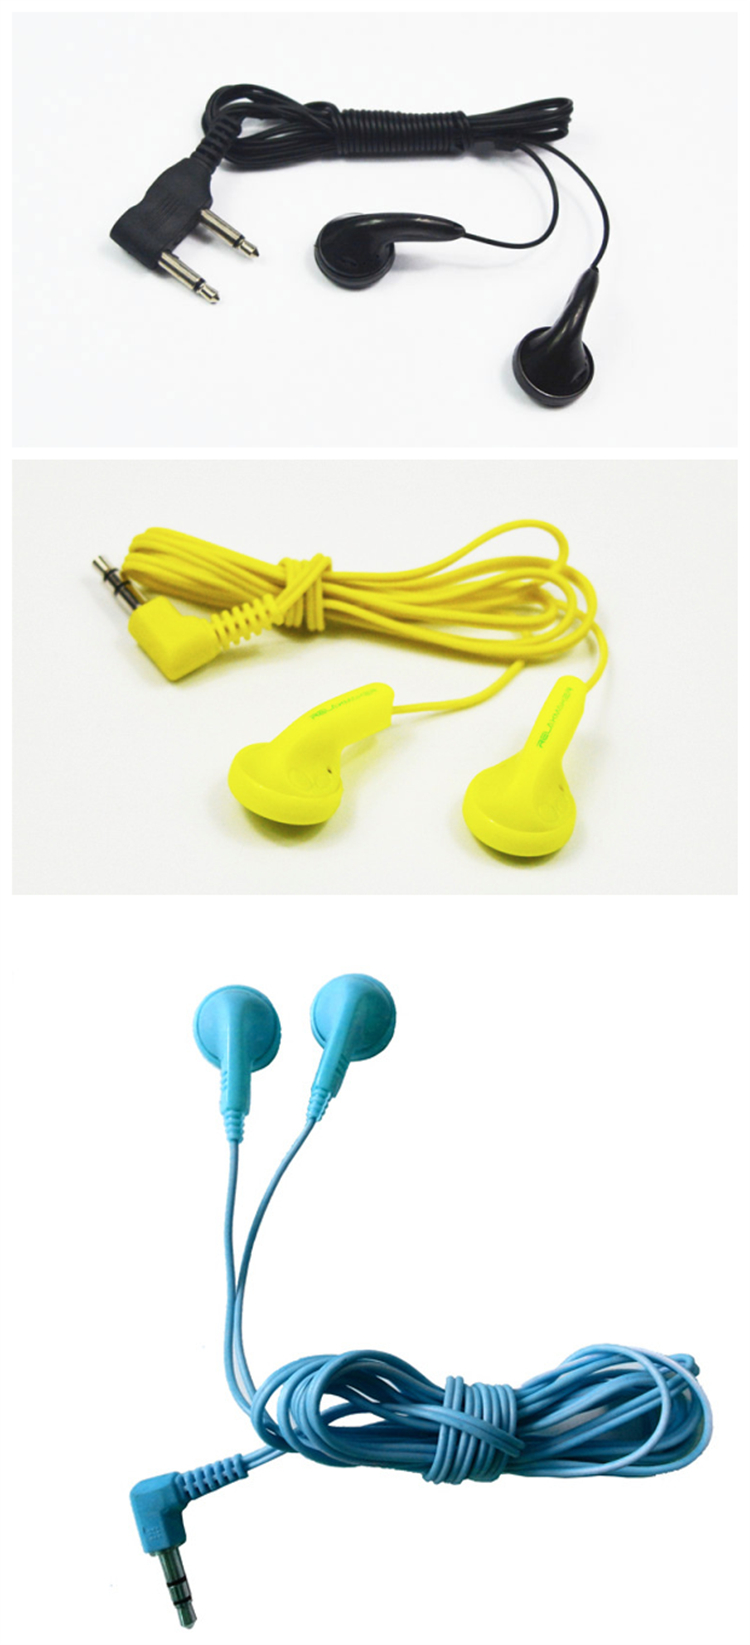 Disposable airplane earbuds airline earphones